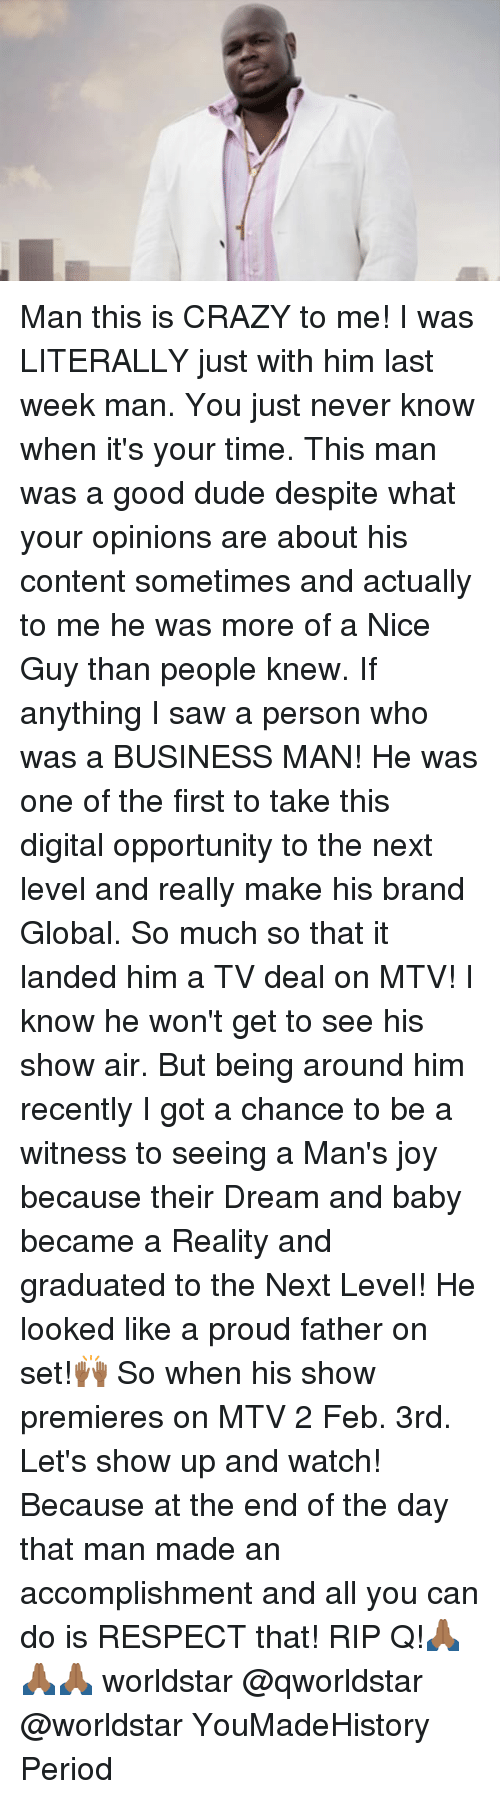 Memes, Mtv, and 🤖: Man this is CRAZY to me! I was LITERALLY just with him last week man. You just never know when it's your time. This man was a good dude despite what your opinions are about his content sometimes and actually to me he was more of a Nice Guy than people knew. If anything I saw a person who was a BUSINESS MAN! He was one of the first to take this digital opportunity to the next level and really make his brand Global. So much so that it landed him a TV deal on MTV! I know he won't get to see his show air. But being around him recently I got a chance to be a witness to seeing a Man's joy because their Dream and baby became a Reality and graduated to the Next Level! He looked like a proud father on set!🙌🏾 So when his show premieres on MTV 2 Feb. 3rd. Let's show up and watch! Because at the end of the day that man made an accomplishment and all you can do is RESPECT that! RIP Q!🙏🏾🙏🏾🙏🏾 worldstar @qworldstar @worldstar YouMadeHistory Period